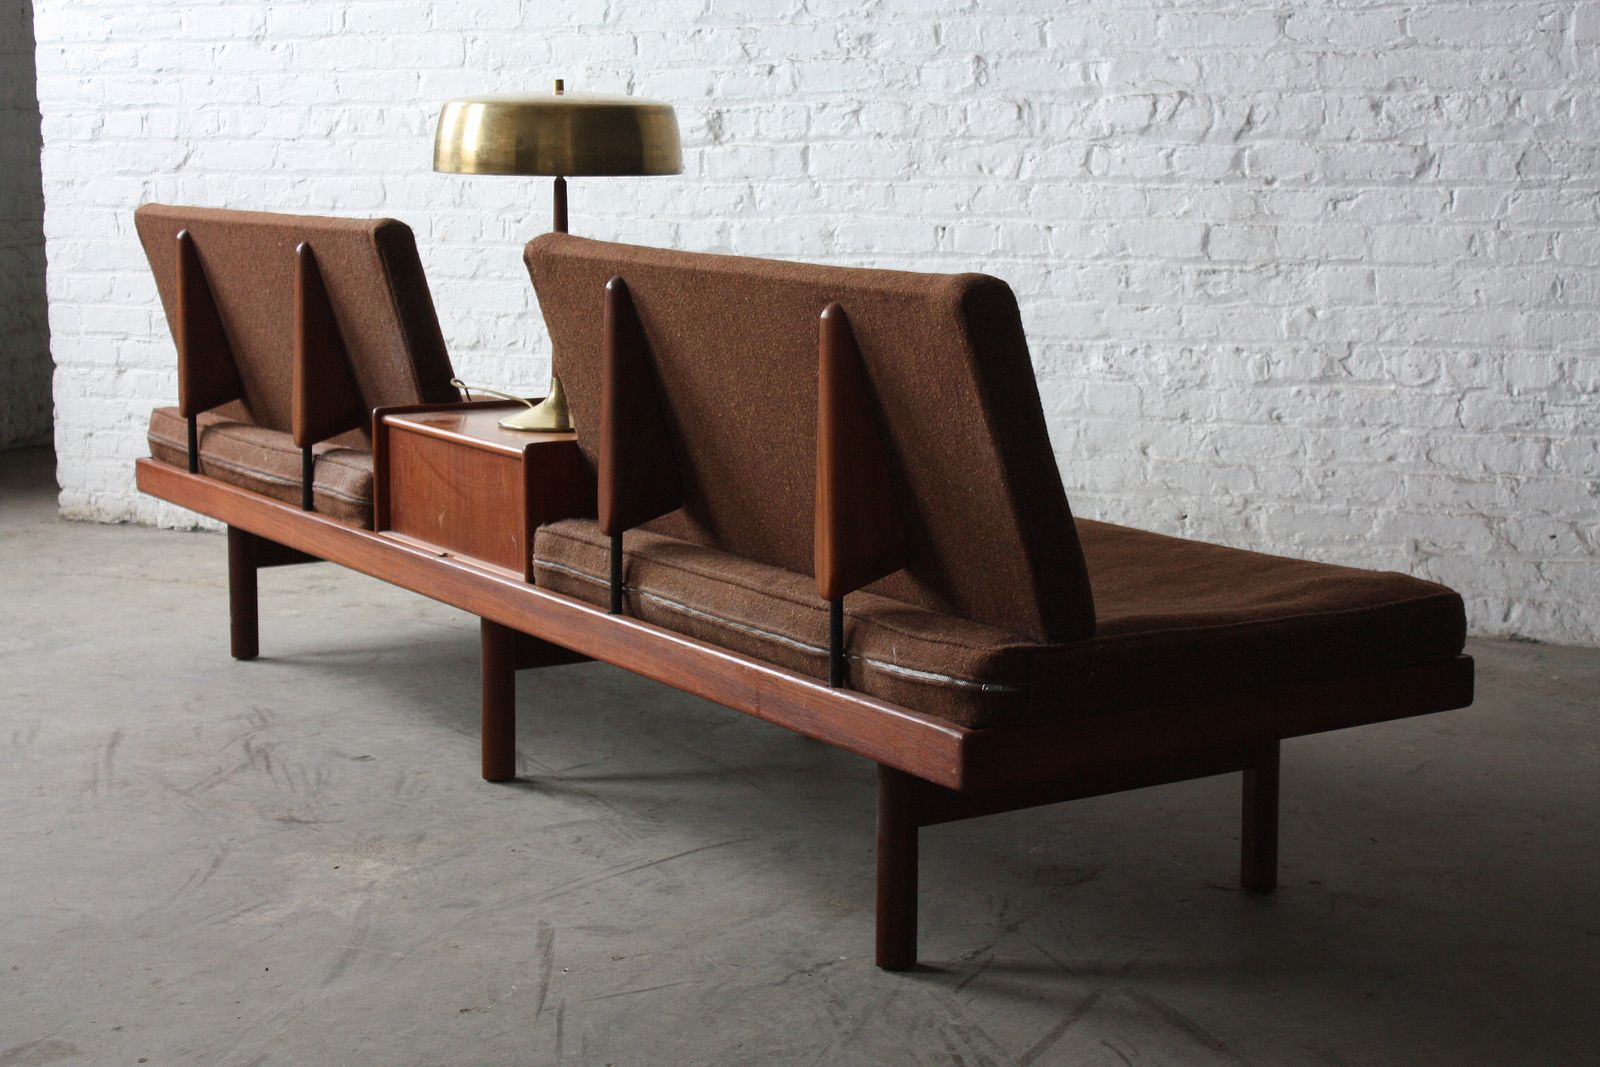 On Deck Memorable Scandinavian Mid Century Modern Karl Sorlie Sonner Platform Sofa Norway 1950 S By Kennyk K2modern